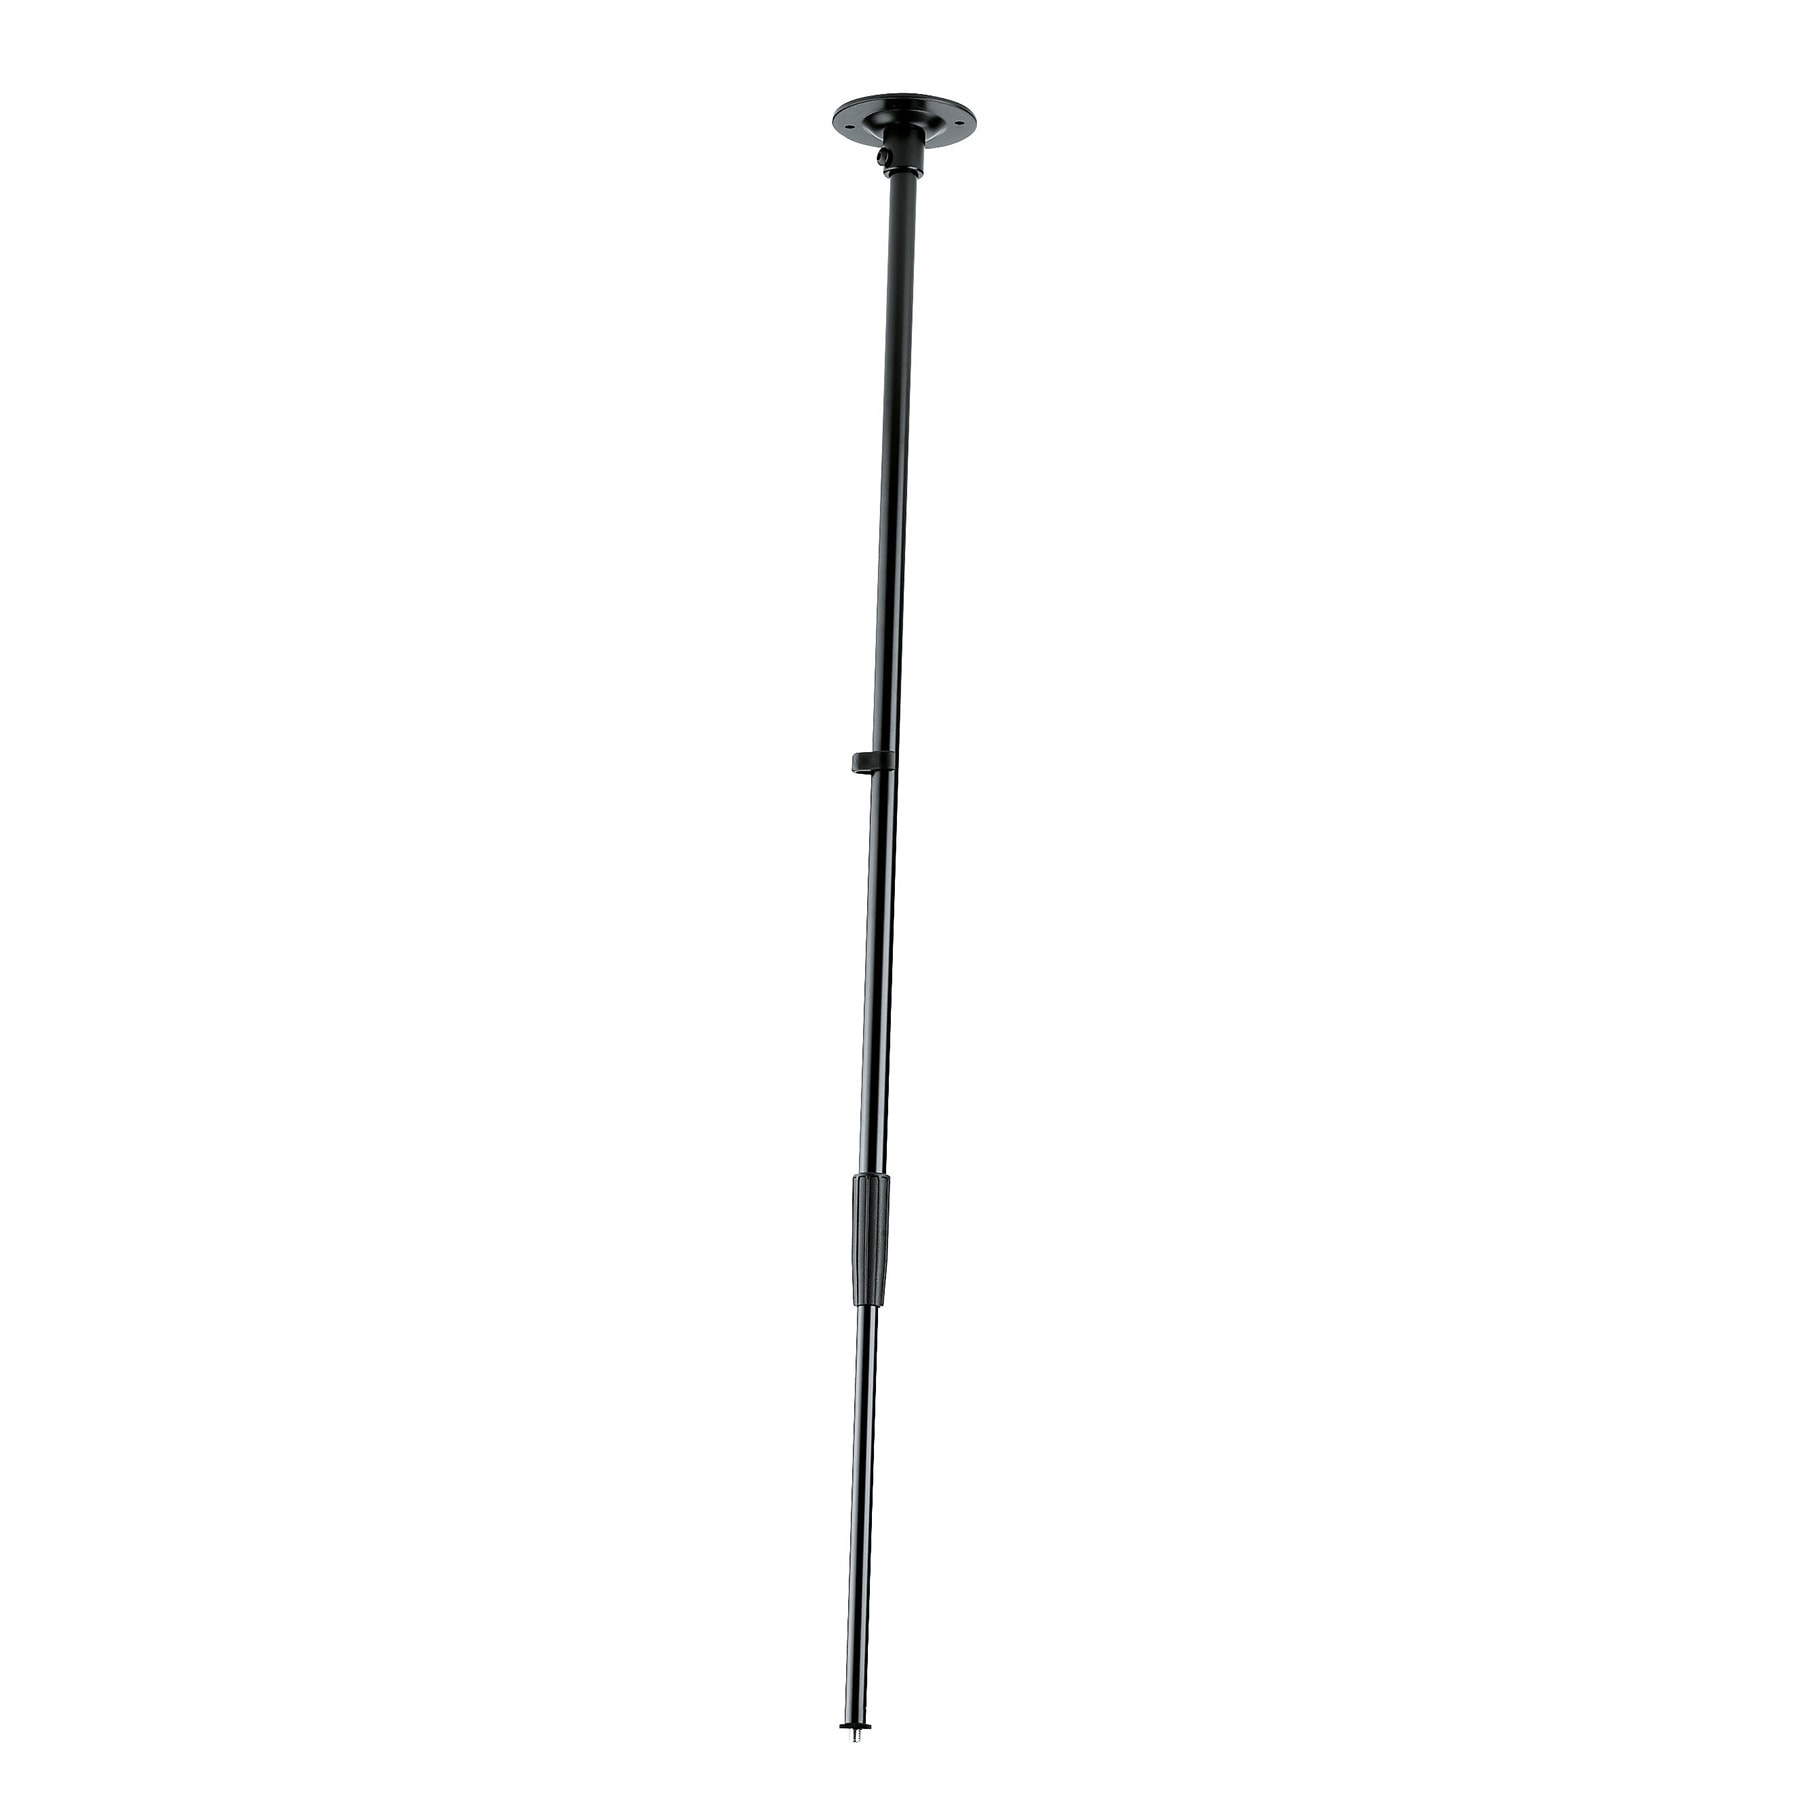 KM22160 - Ceiling stand